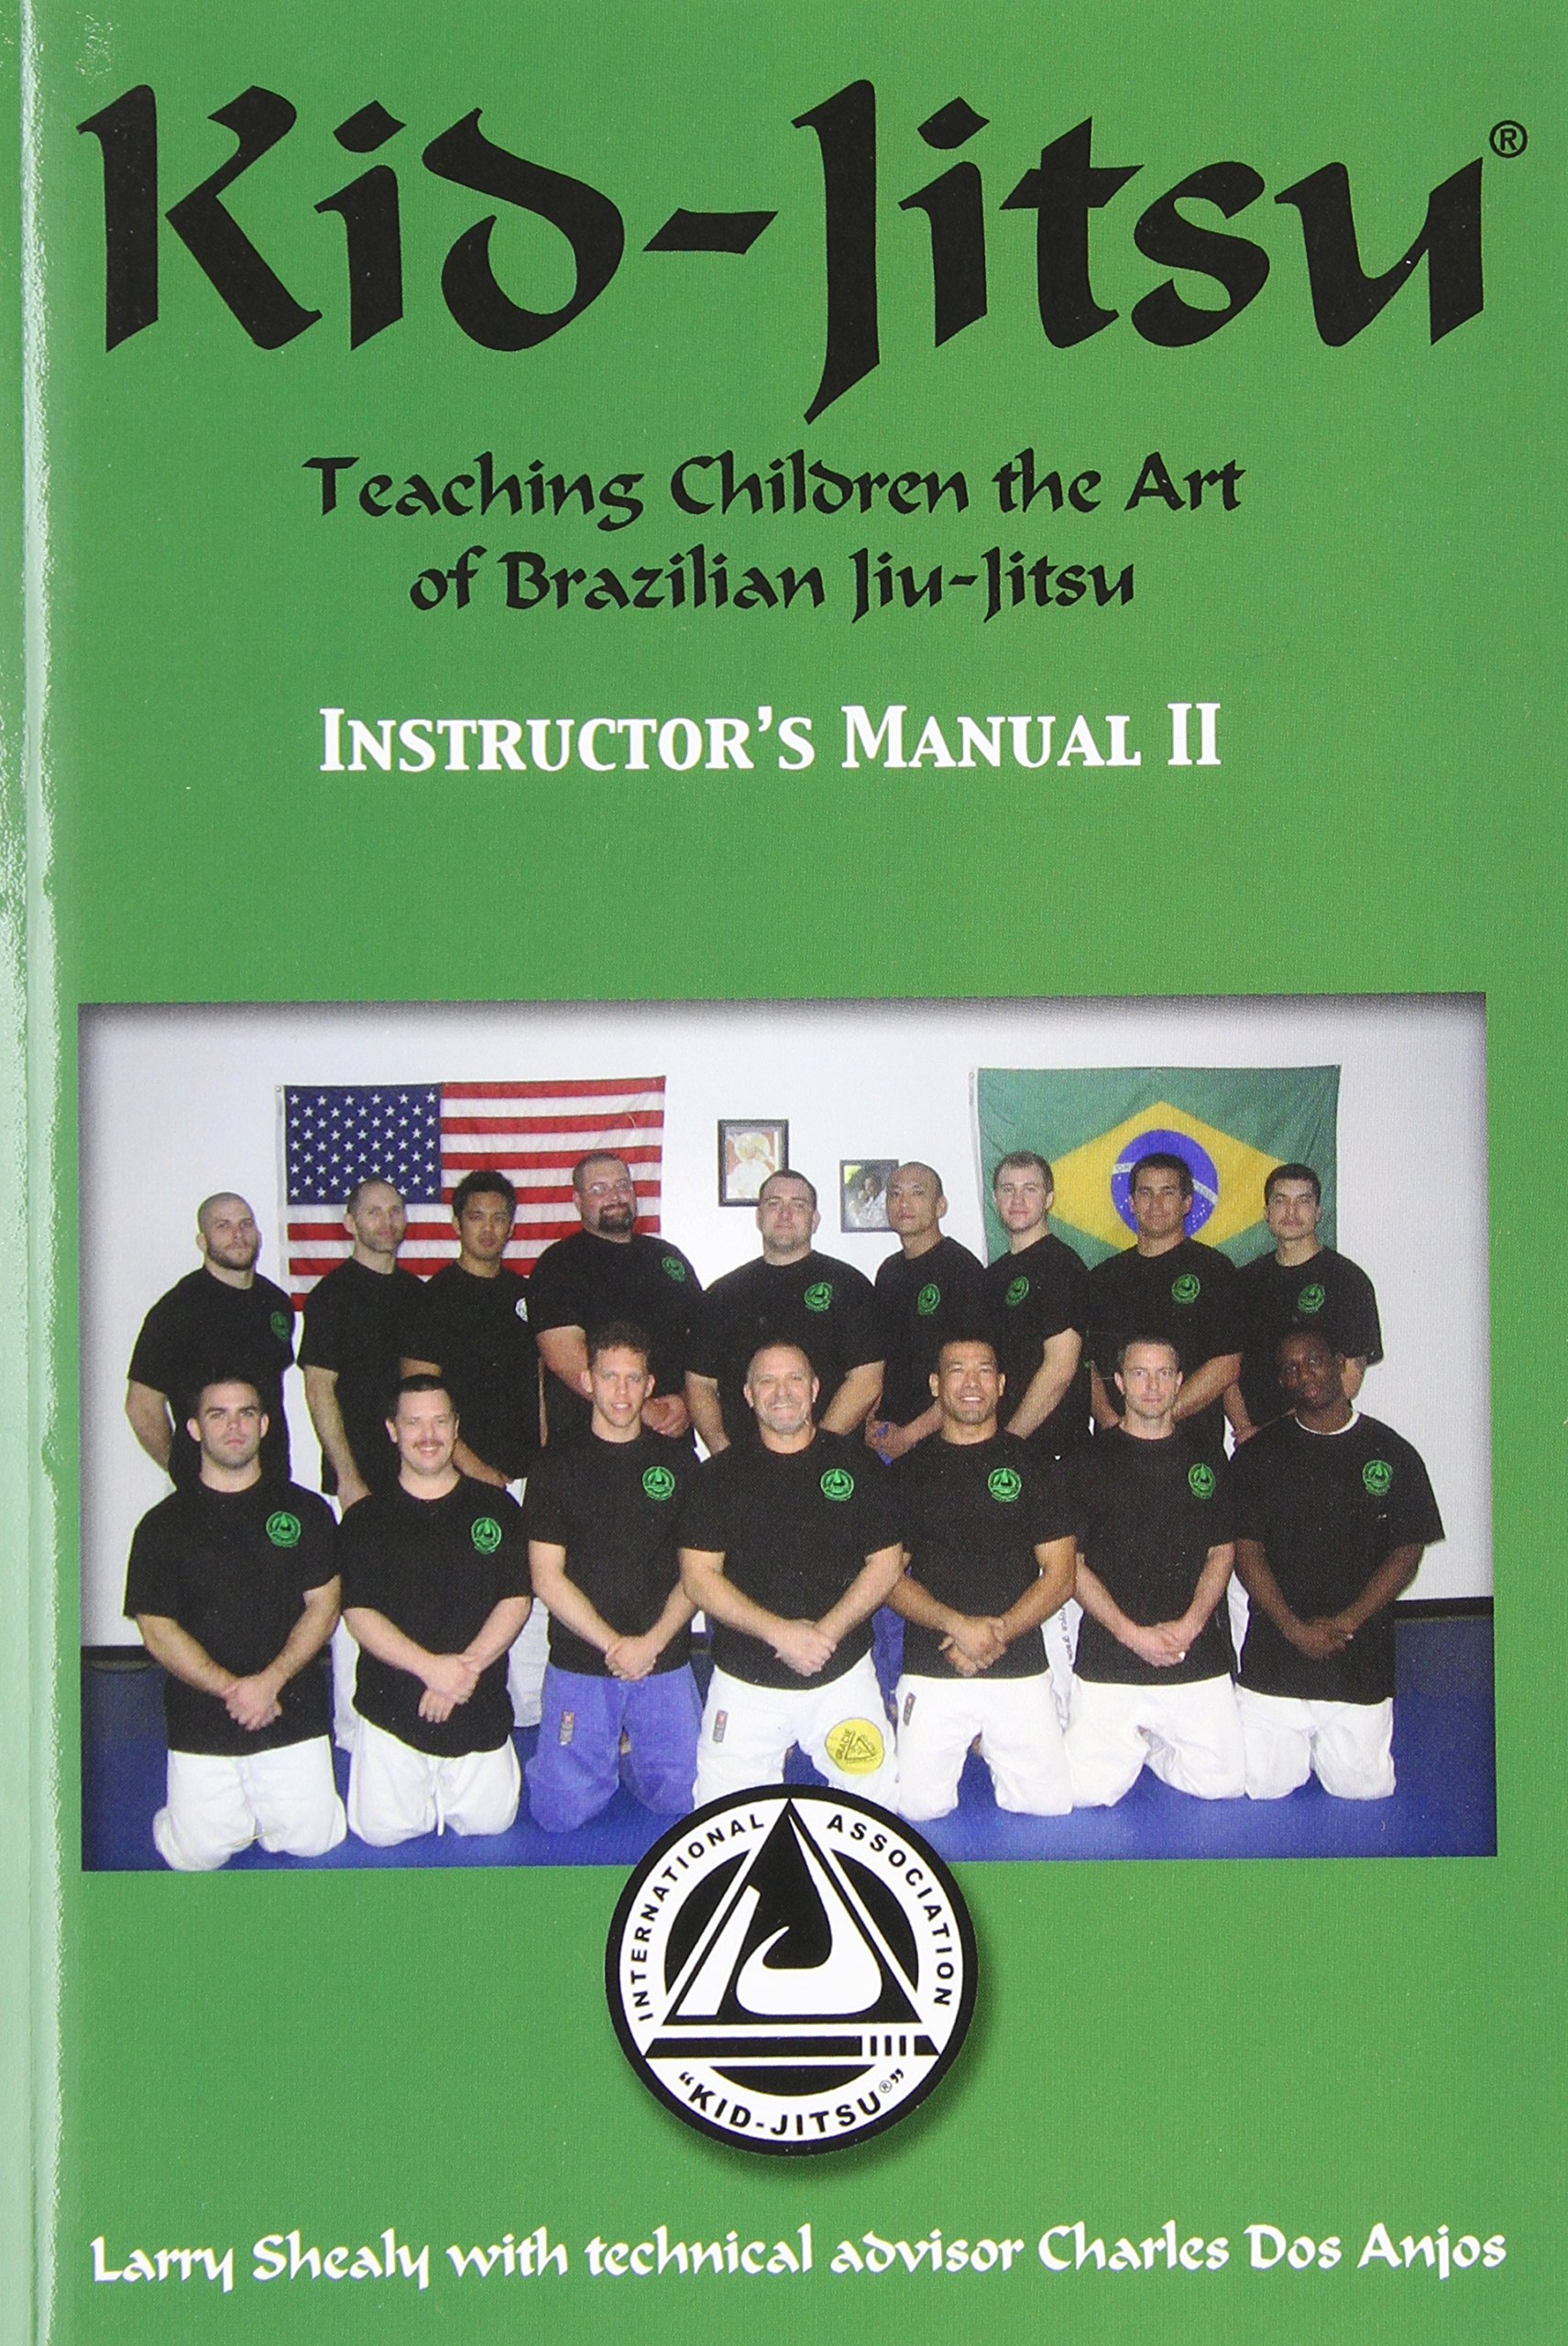 Official gracie instructor manual array kid jitsu r teaching children the art of brazilian jiu jitsu rh fandeluxe